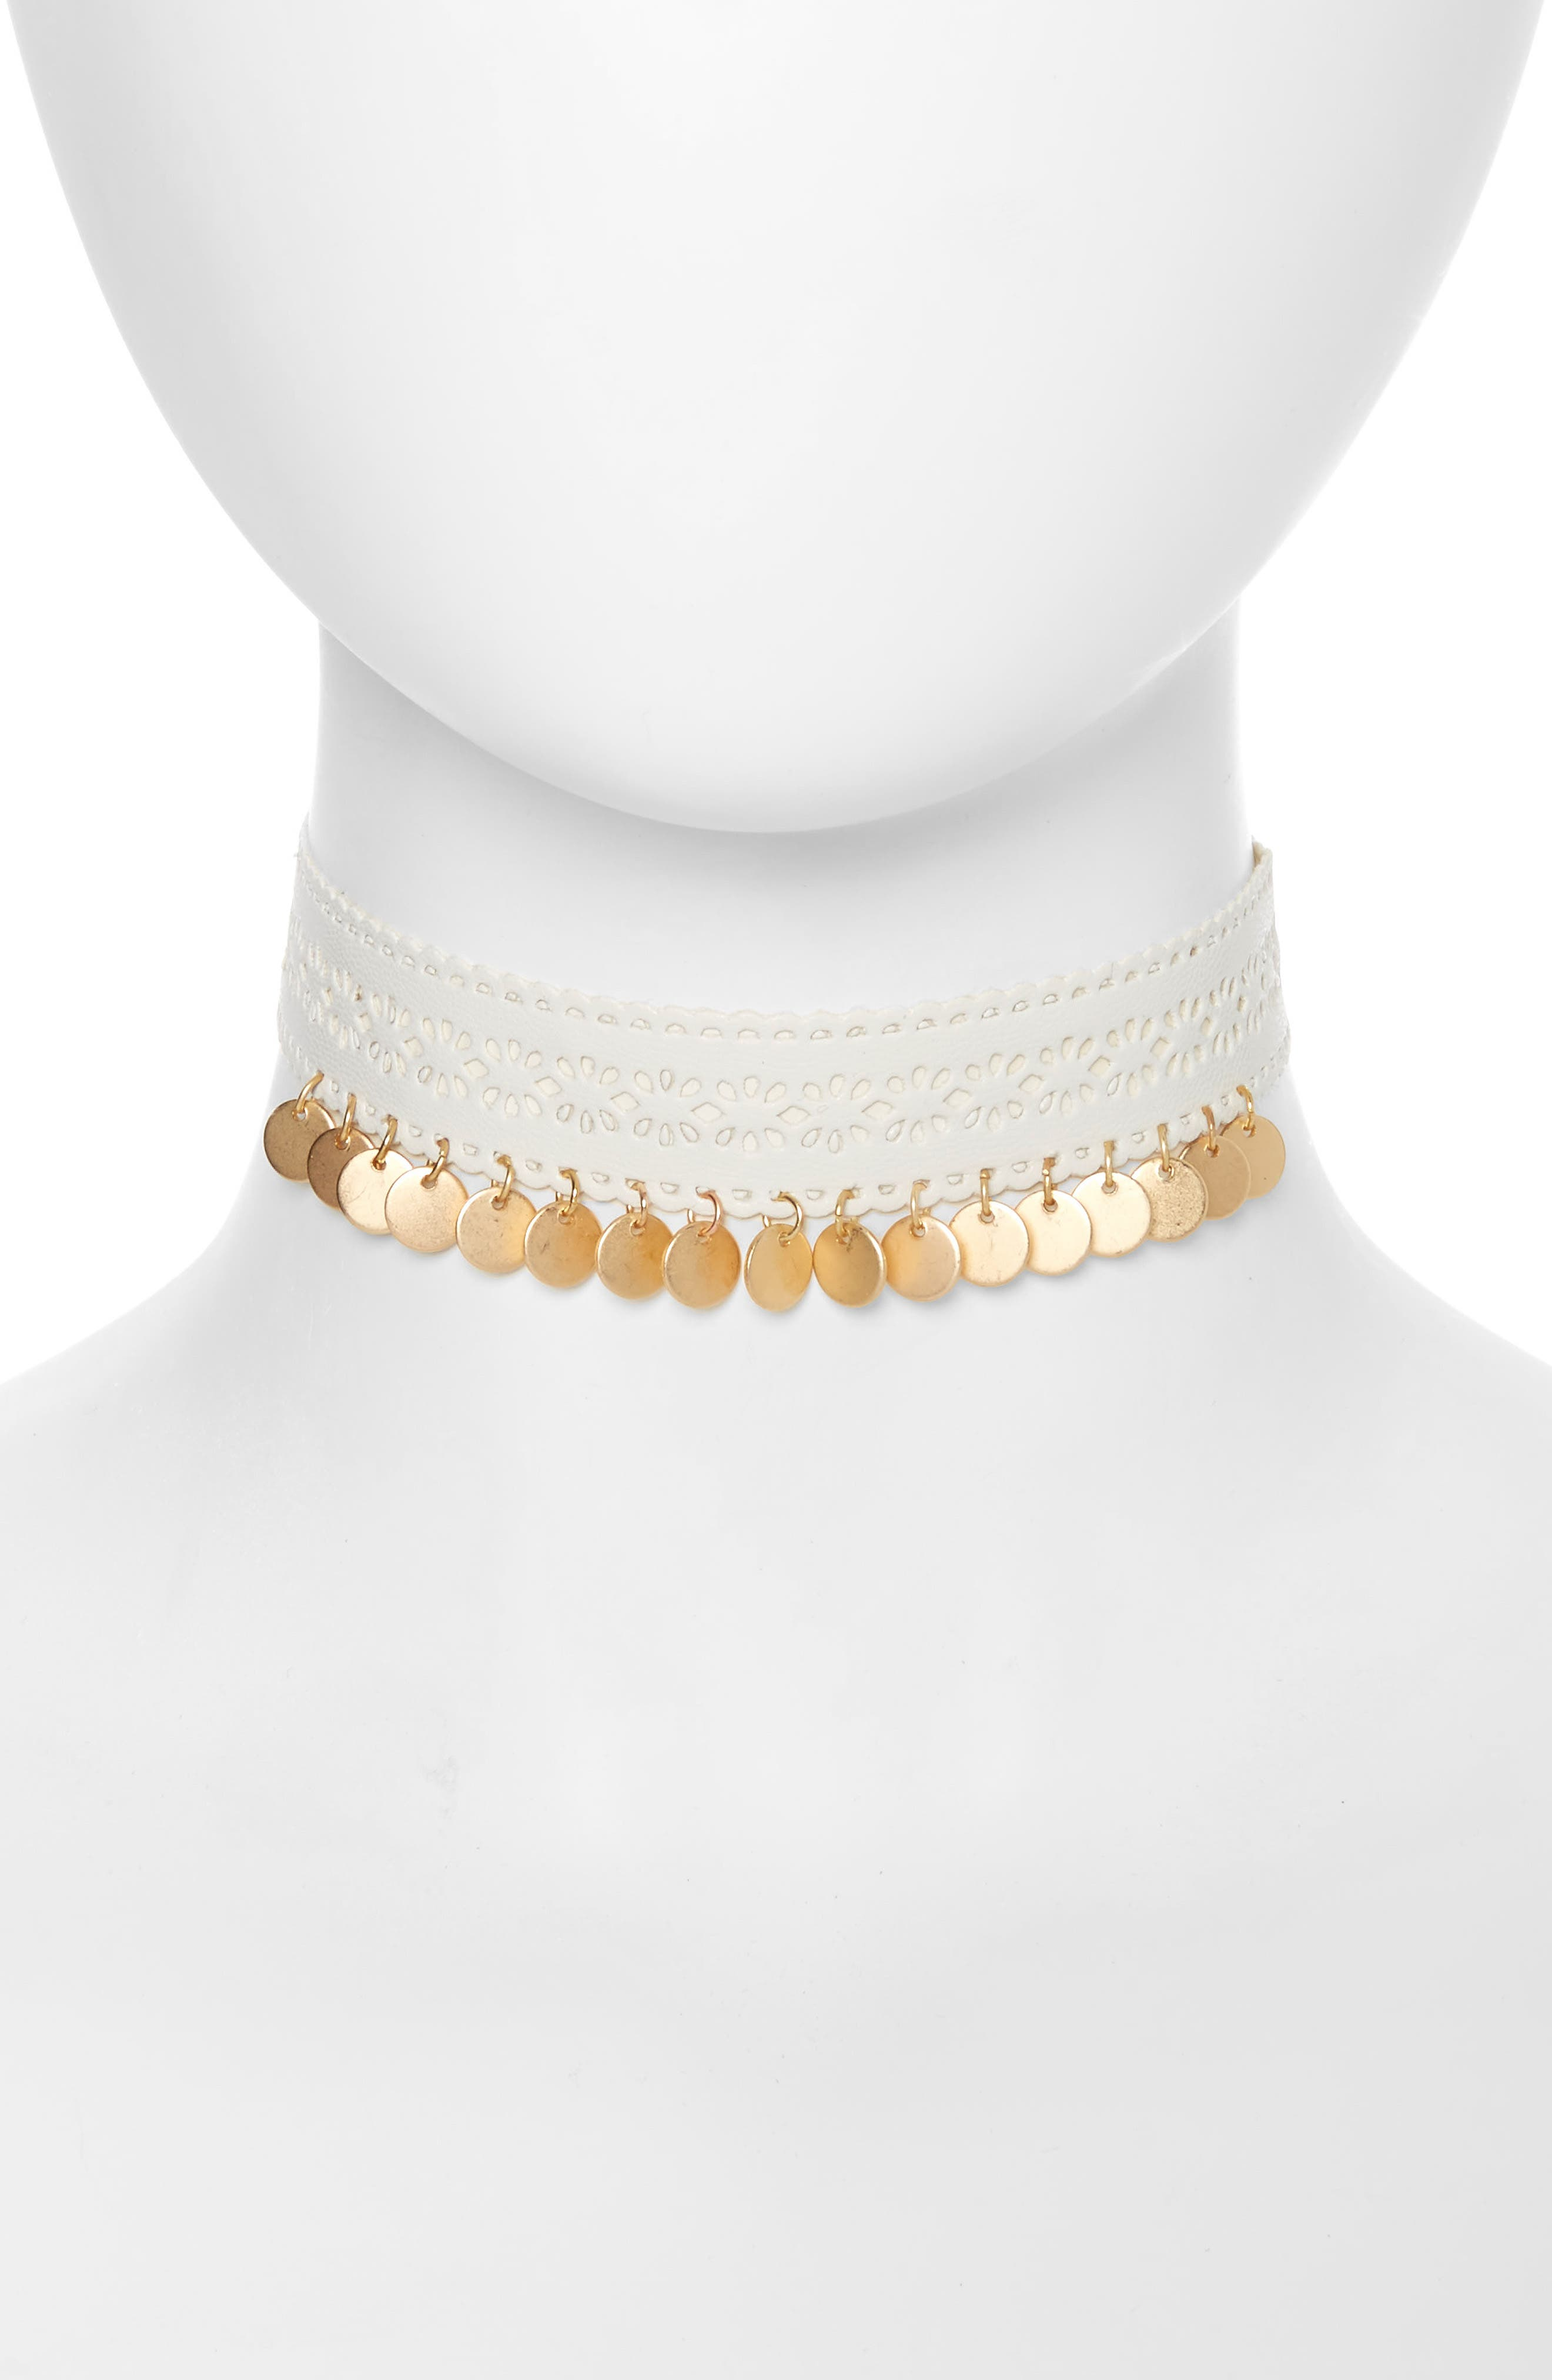 Topshop Cutout & Disc Leather Choker